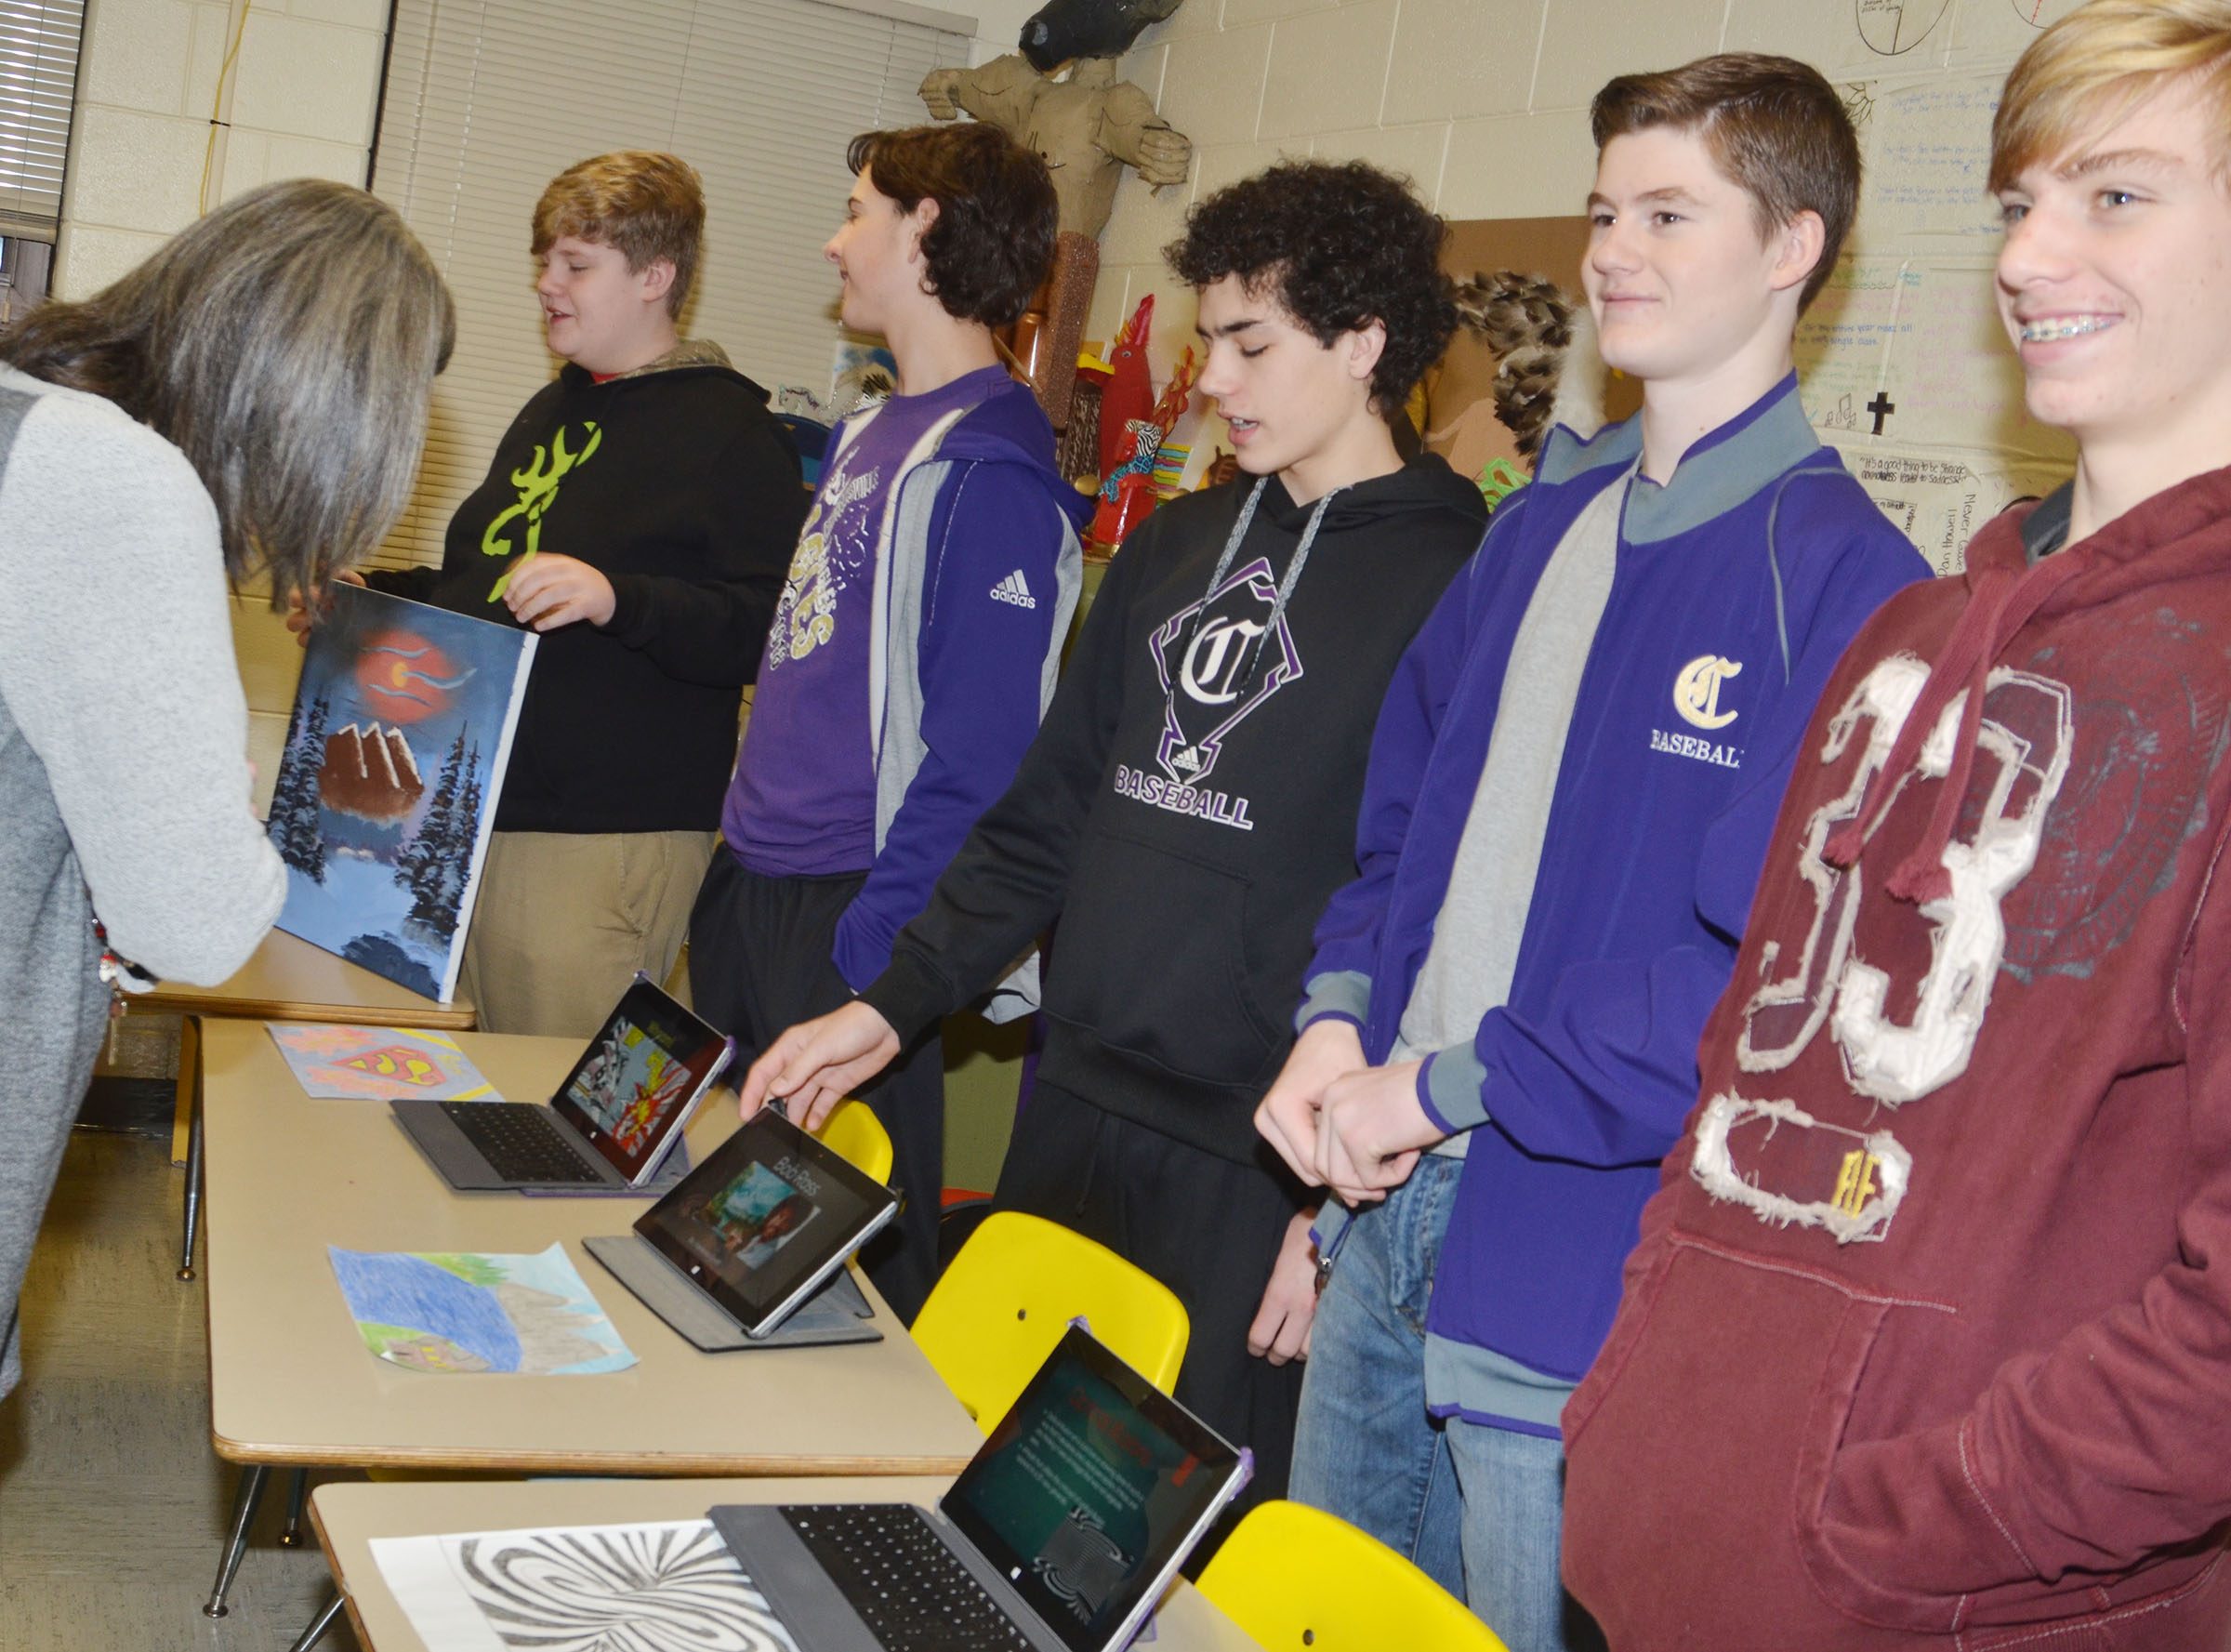 From left, CMS eighth-graders Noah Mardis, John Orberson, Kameron Smith, Tristin Faulkner and Arren Hash display their artwork.